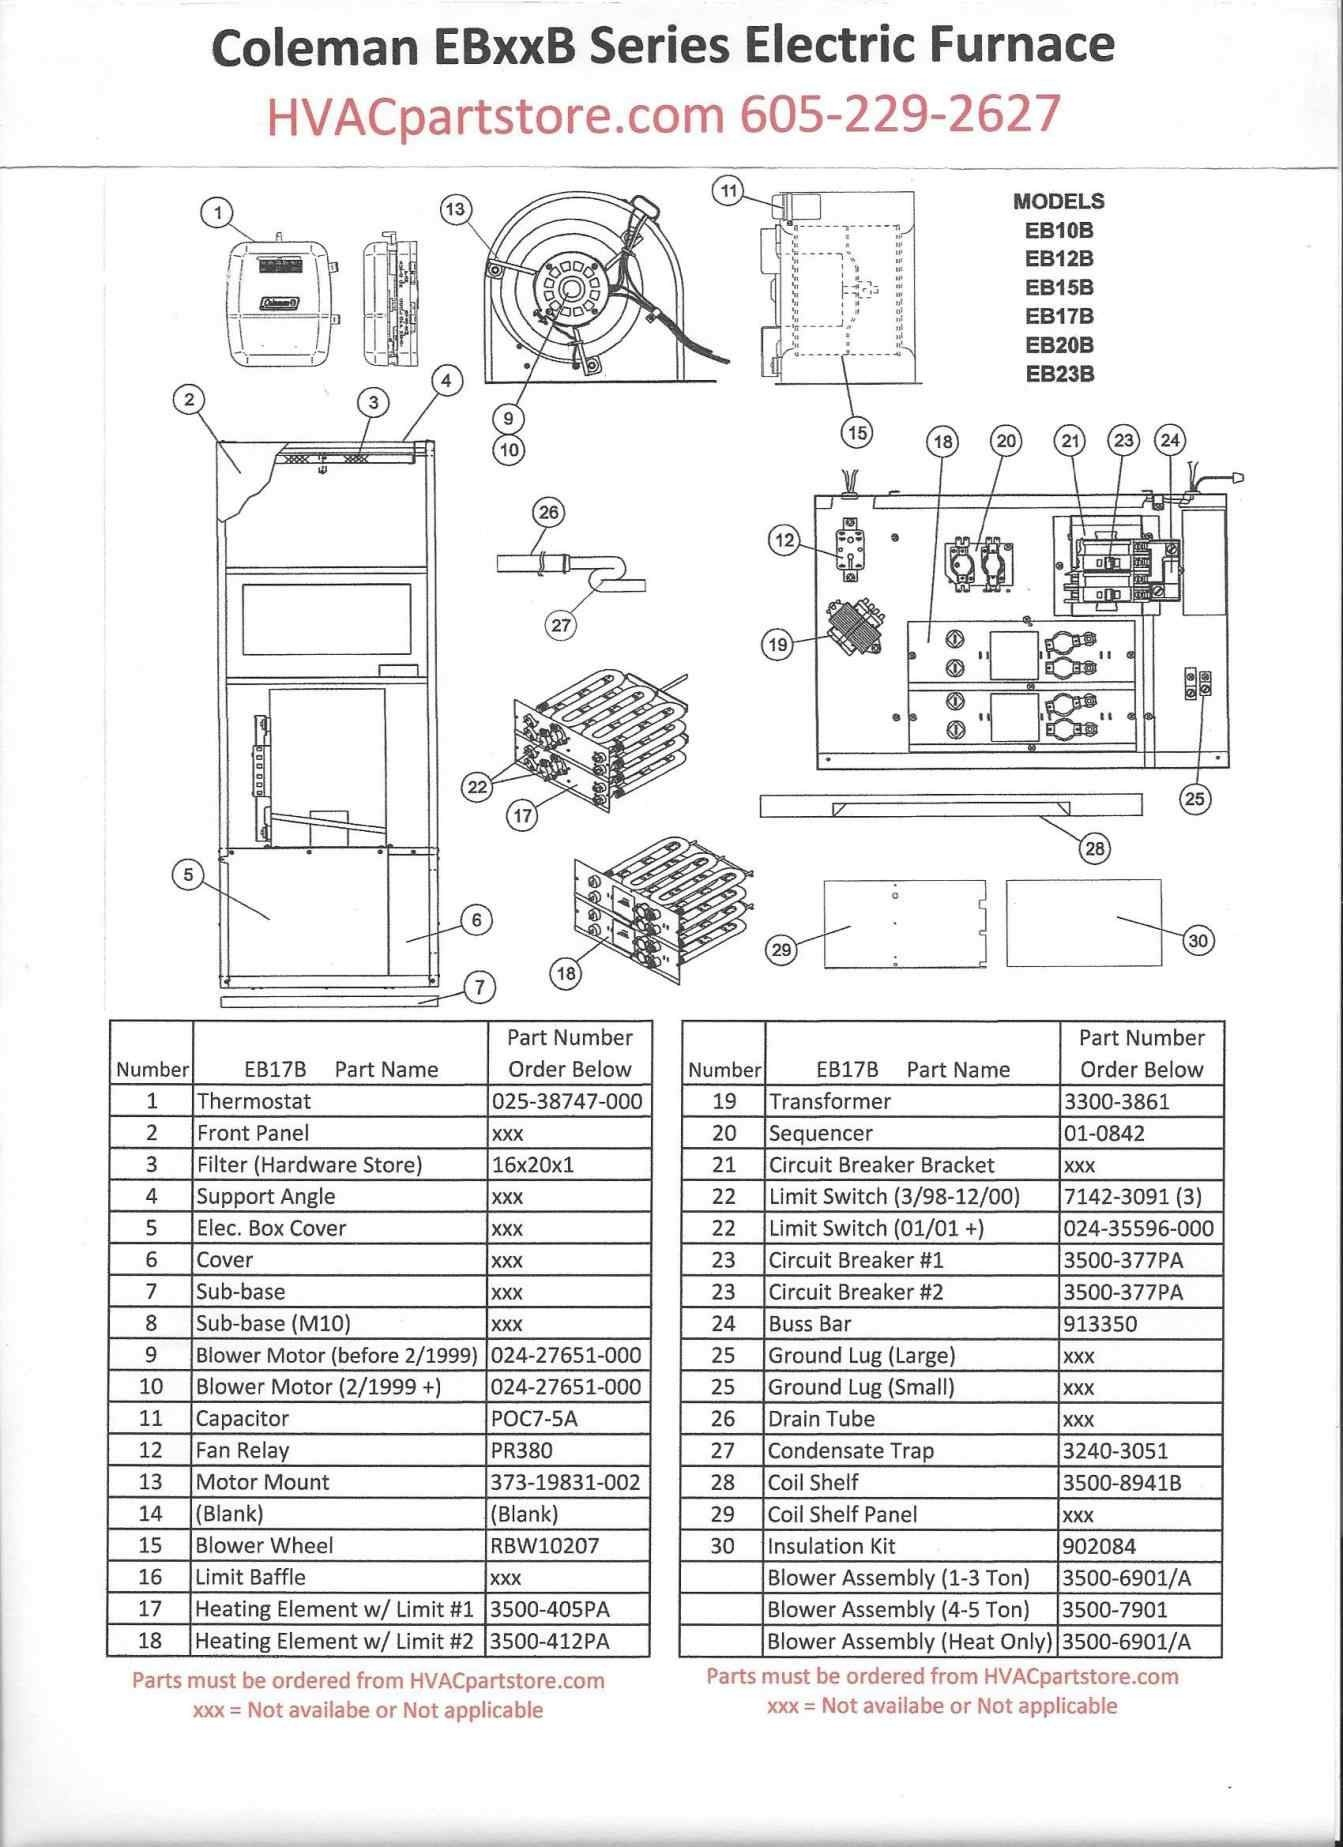 Coleman Stove Parts Diagram Majestic Gas Fireplace Wiring Diagram Save Gas Fireplace Parts Of Coleman Stove Parts Diagram